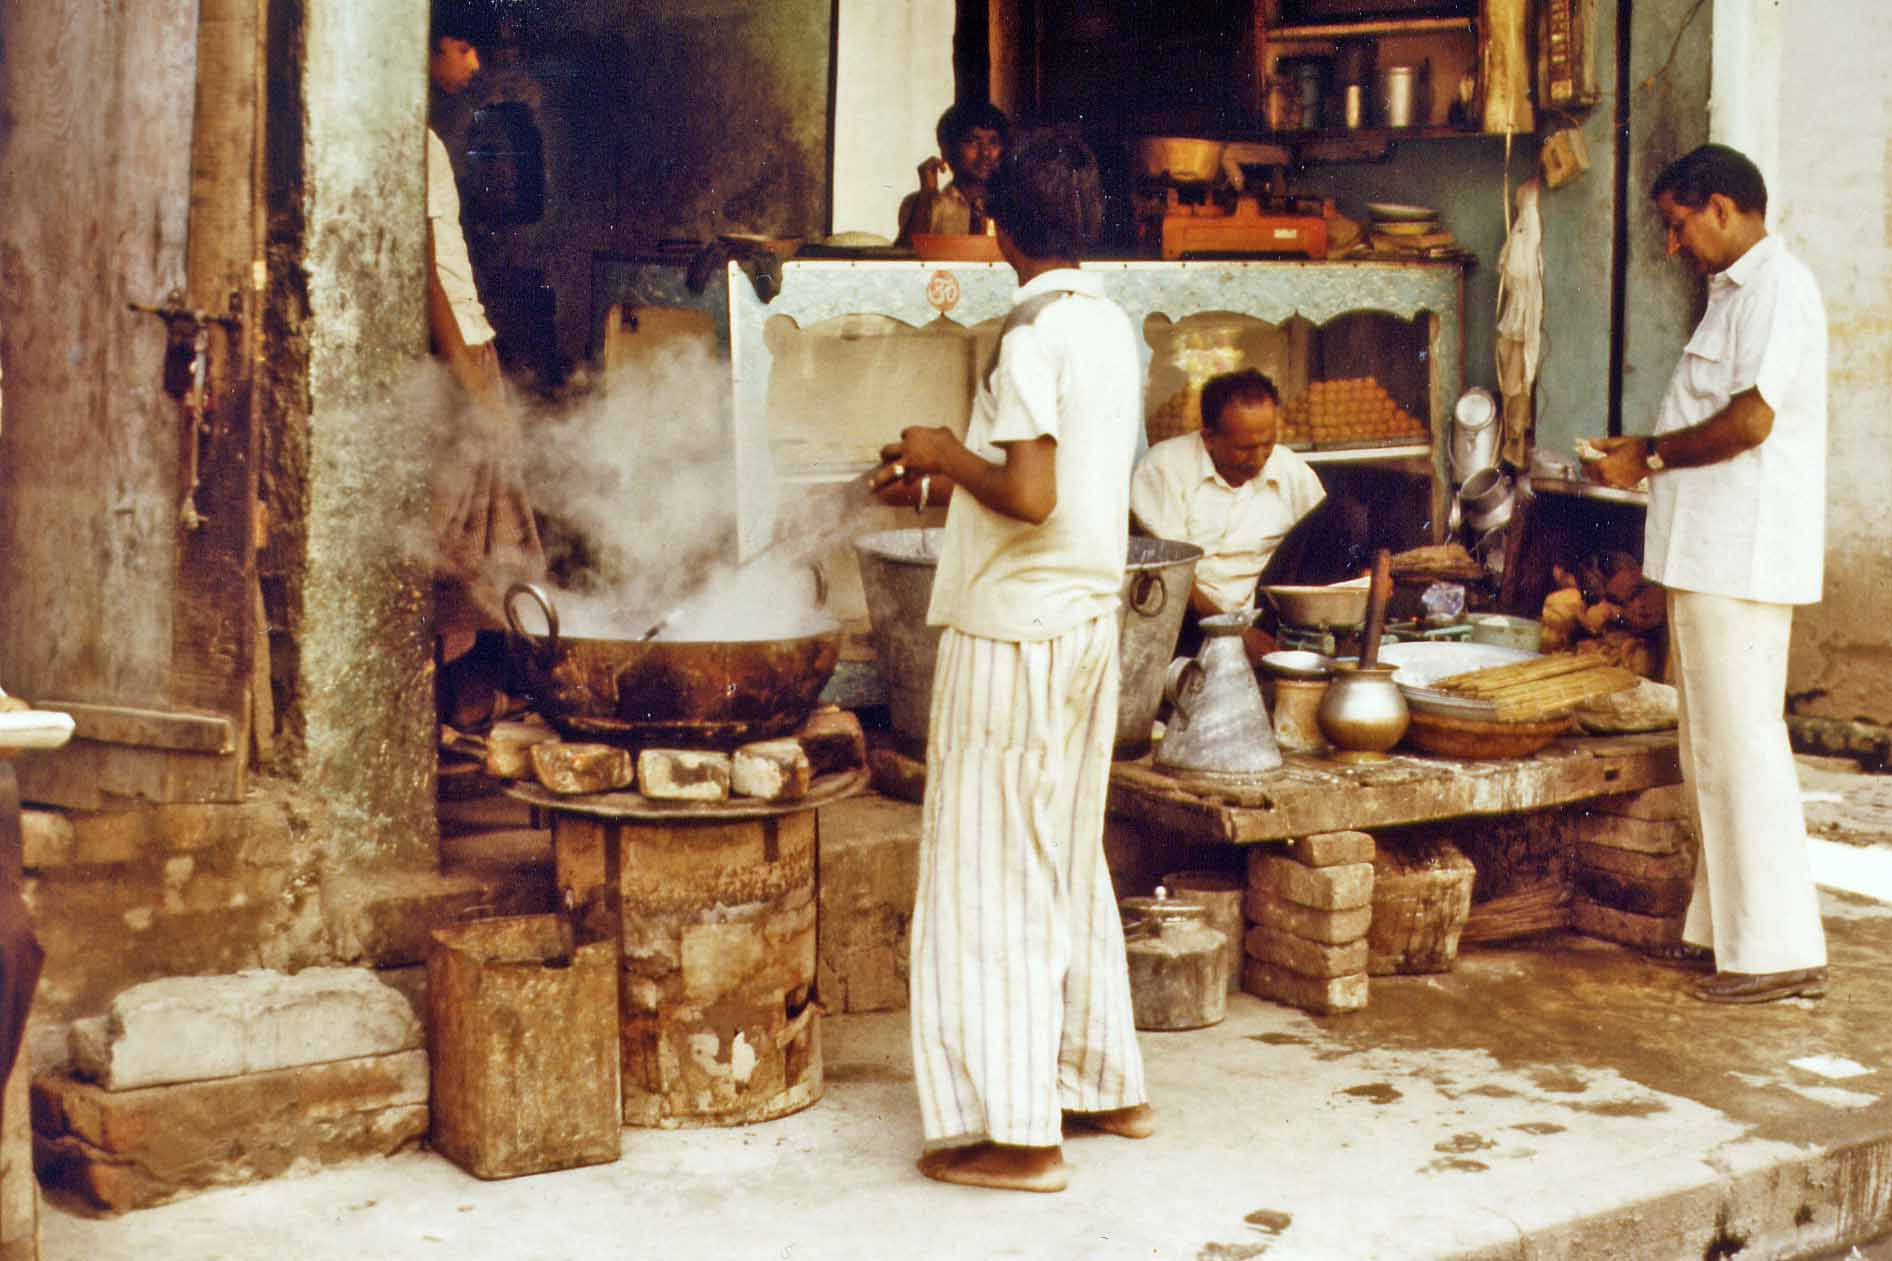 Street kitchen in Amritsar, India 1983